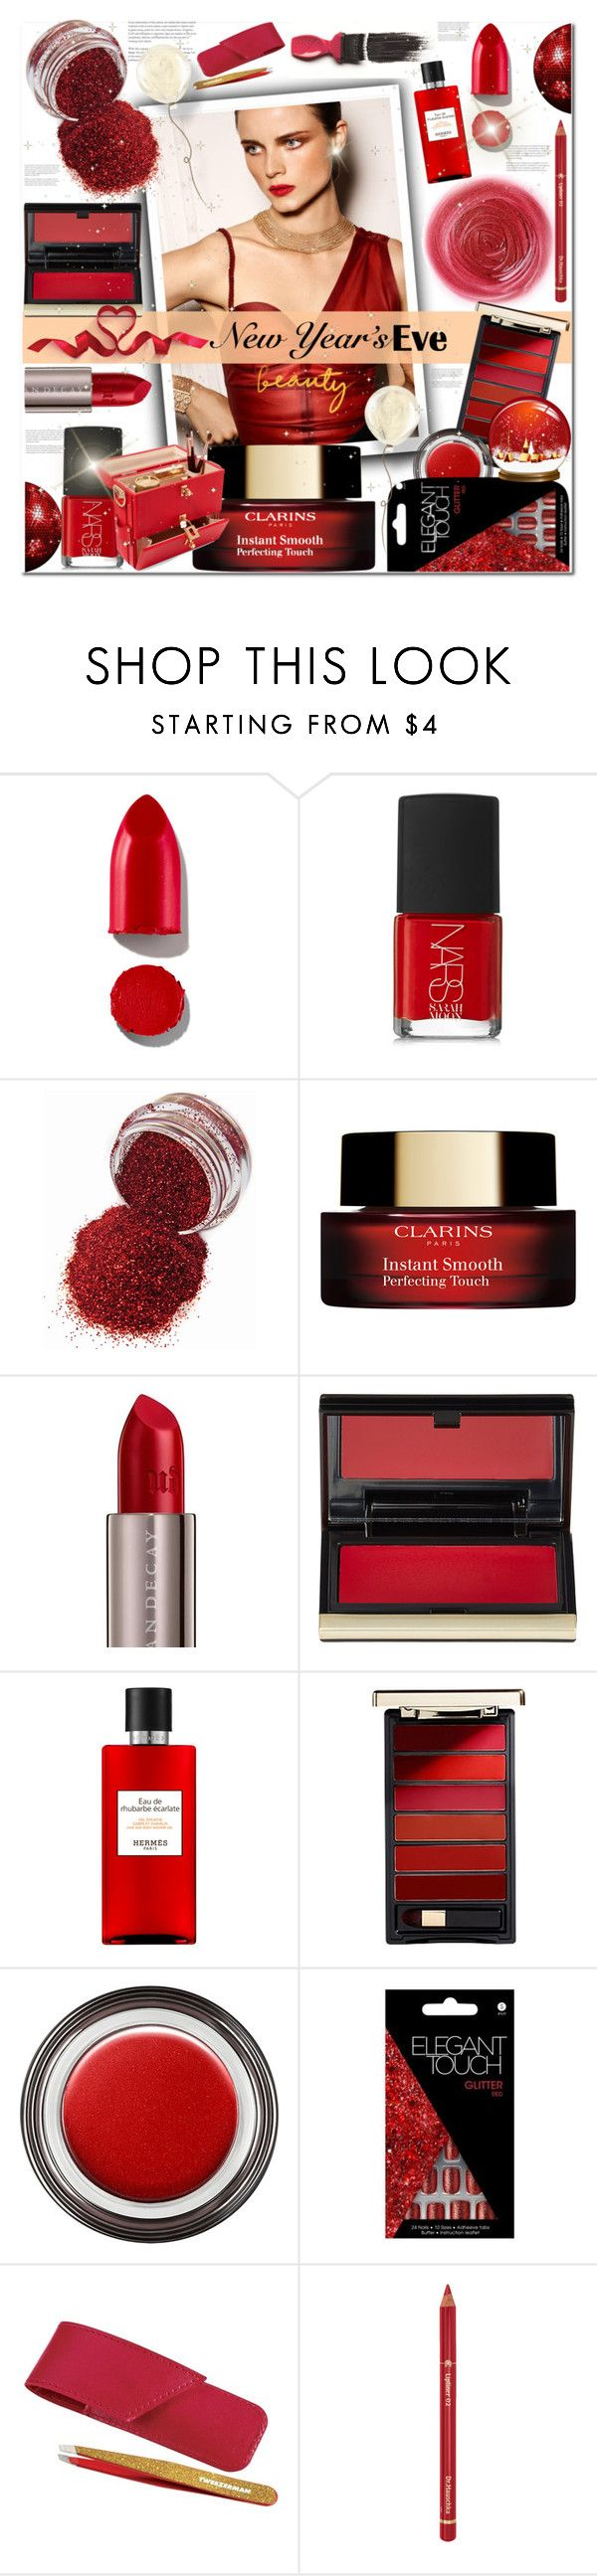 """NEW YEAR EVE BEAUTY"" by sweta-gupta ❤ liked on Polyvore featuring beauty, Avon, Rituel de Fille, Rodin, NARS Cosmetics, Urban Decay, Kevyn Aucoin, L'Oréal Paris, Giorgio Armani and Tweezerman"